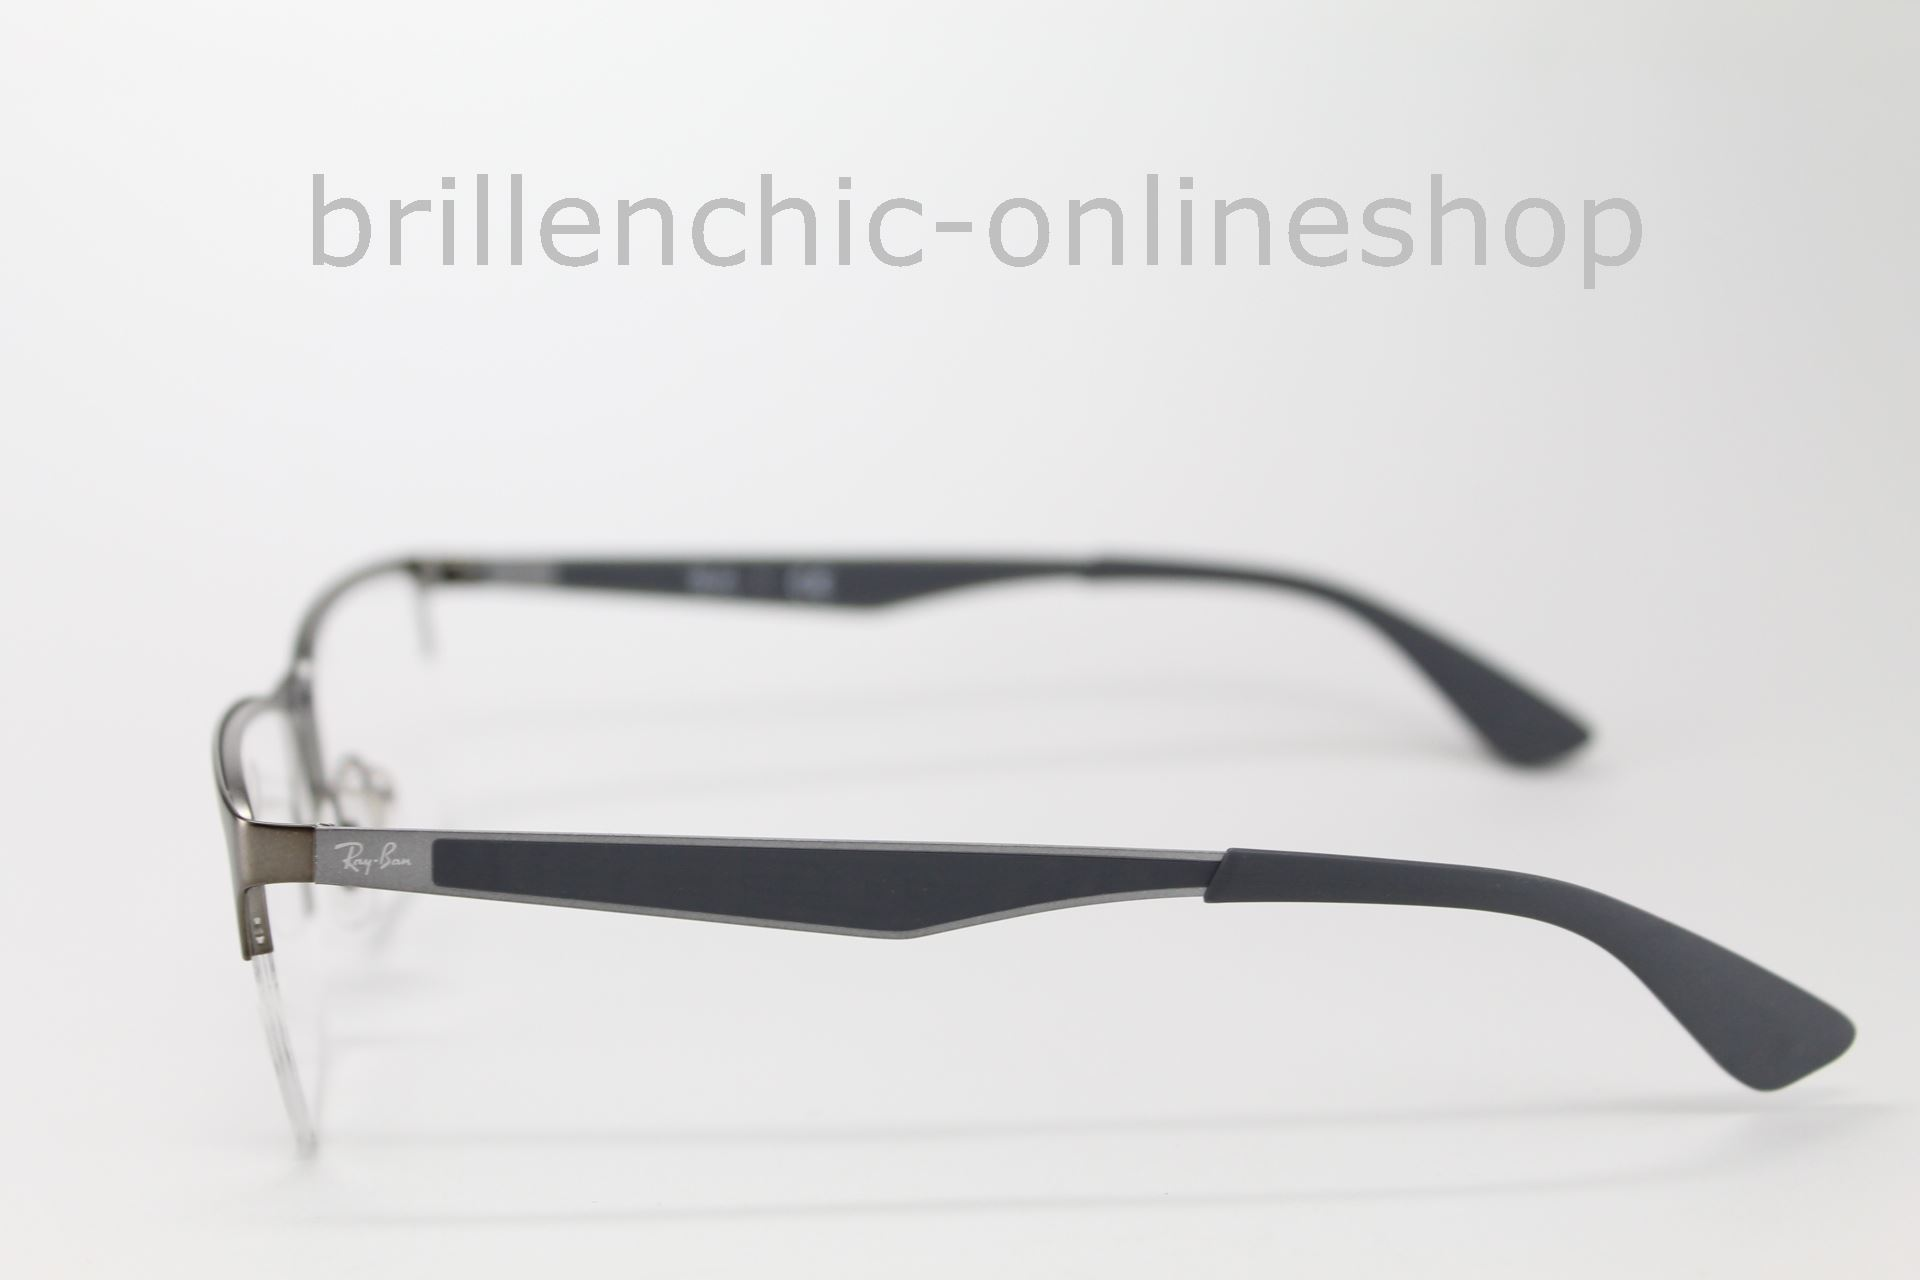 3267a7cd3bd Brillenchic-onlineshop in Berlin - Ray Ban RB 6335 2855